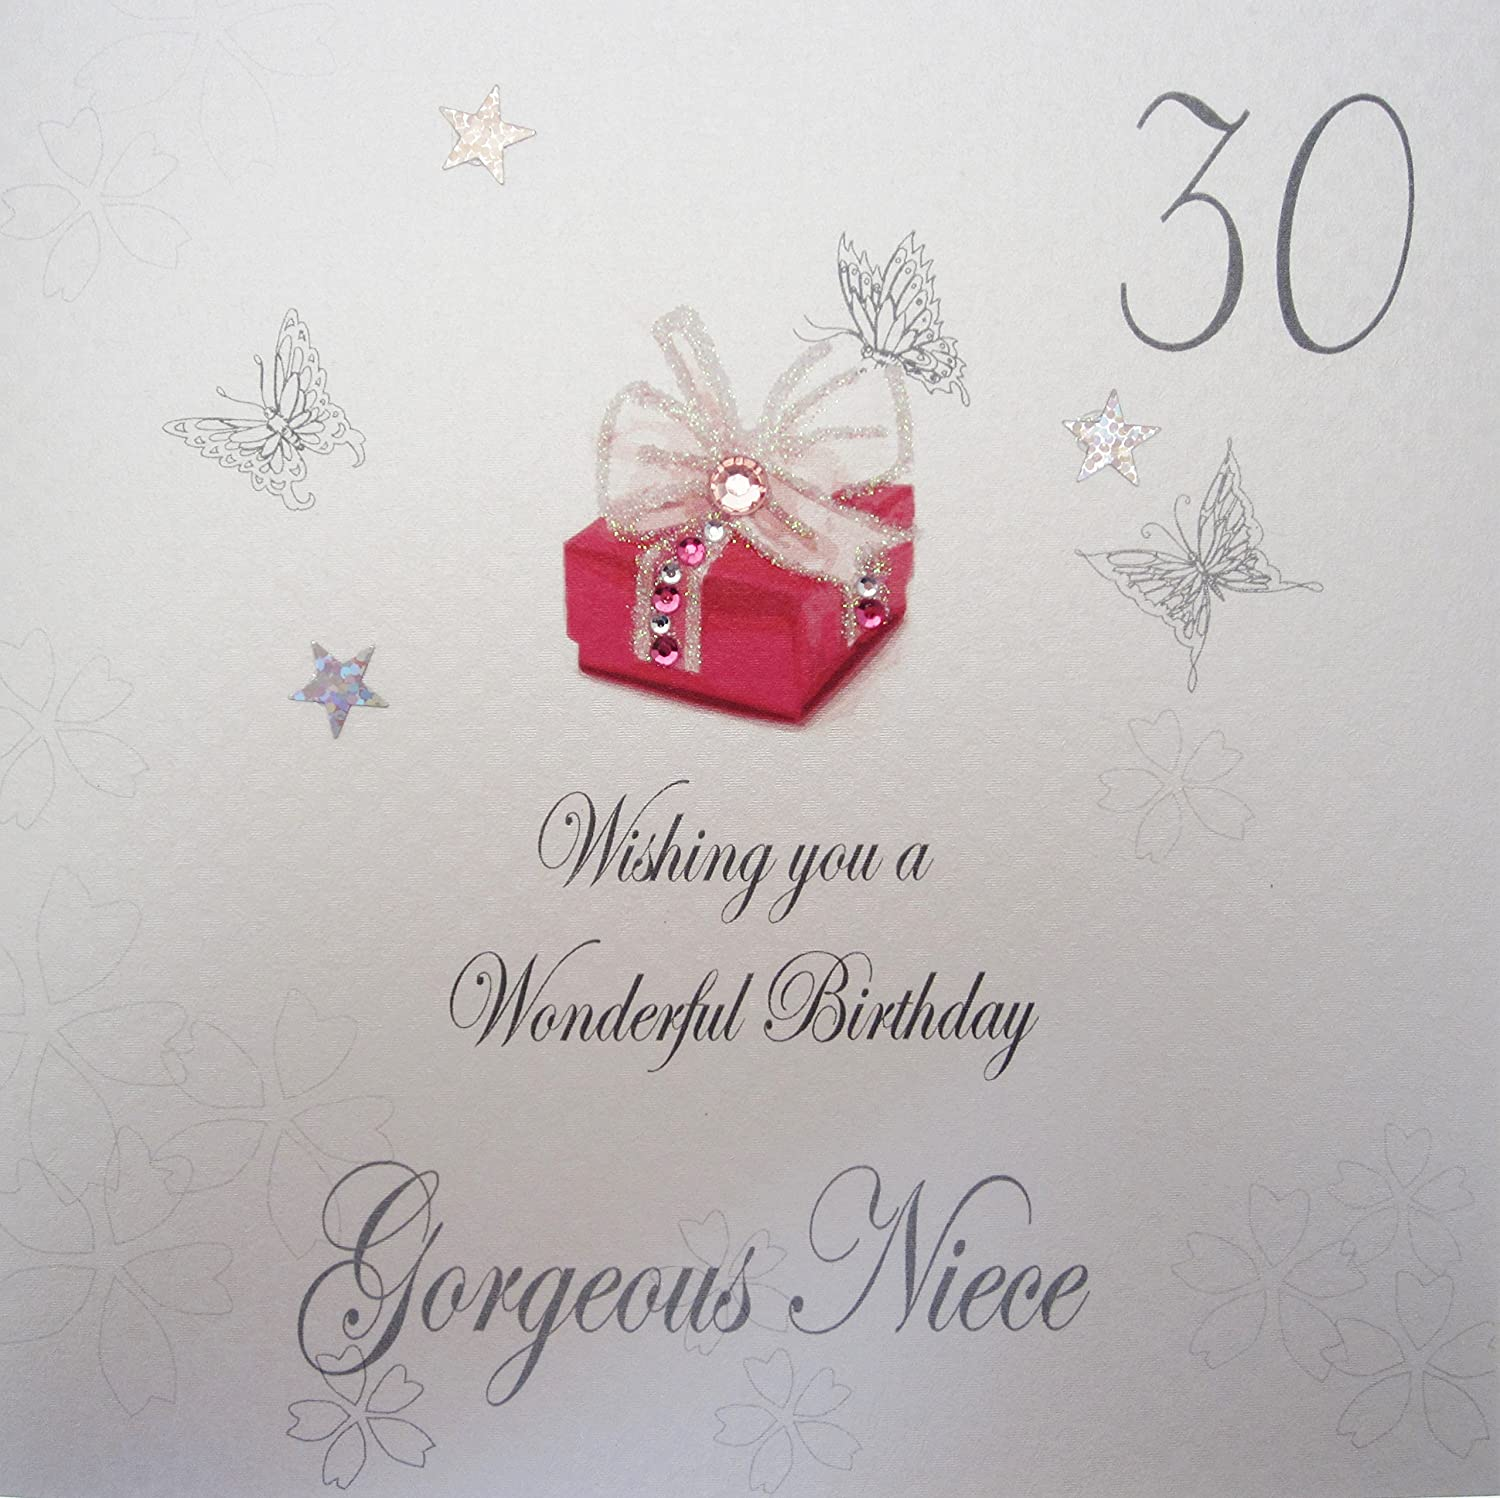 White cotton cards bdp30 n red present wishing you a wonderful white cotton cards bdp30 n red present wishing you a wonderful birthday gorgeous niece handmade 30th birthday card white amazon kitchen home kristyandbryce Choice Image